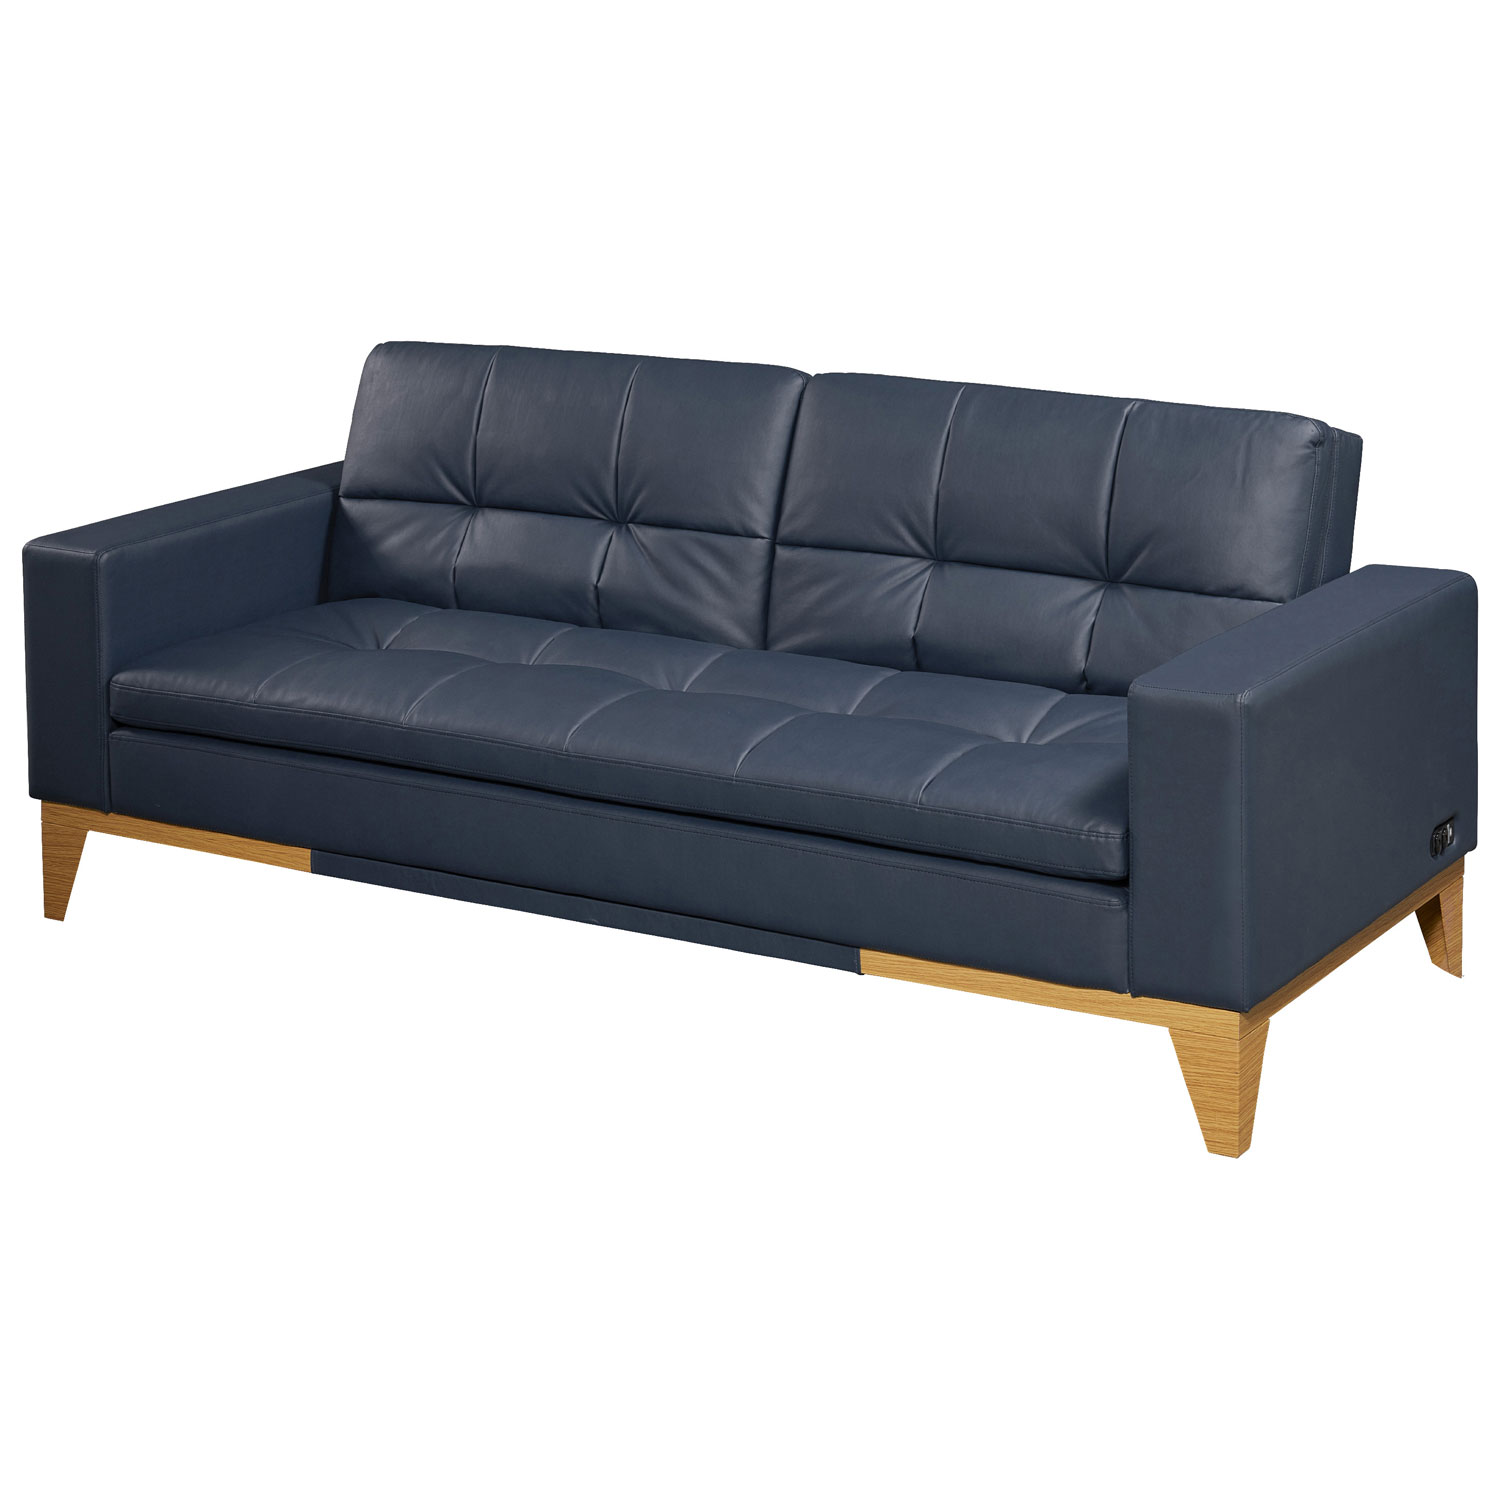 Wesley Modern Faux Leather Futon  Double  Navy Futons